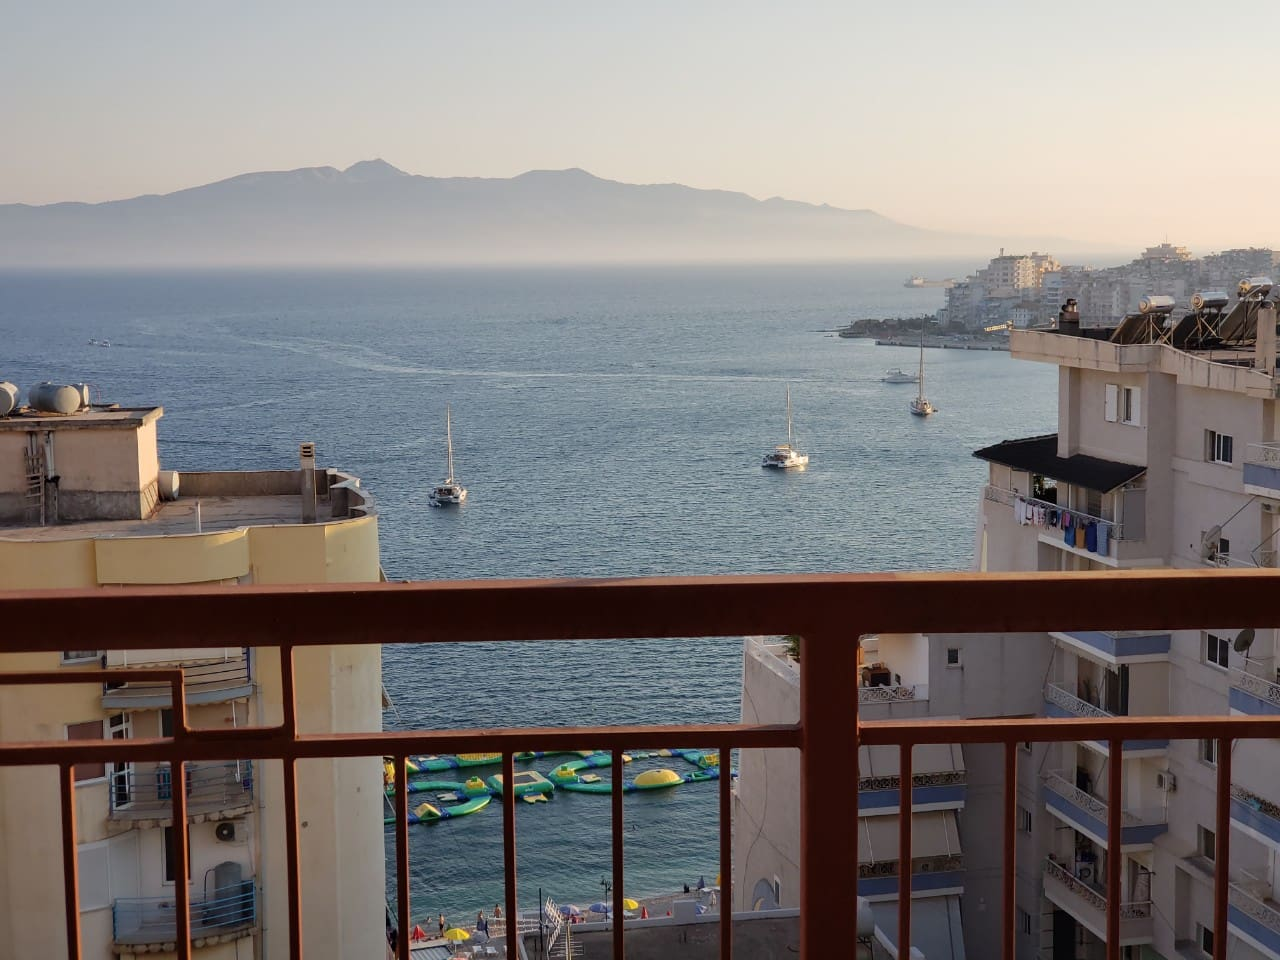 Saranda seaside apartment for rent. The apartment is located in Quarter No. 1, easily accessible, 5 minutes walking distance from the beach and the town center. It is newly built, fully furnished, with very nice sea view.